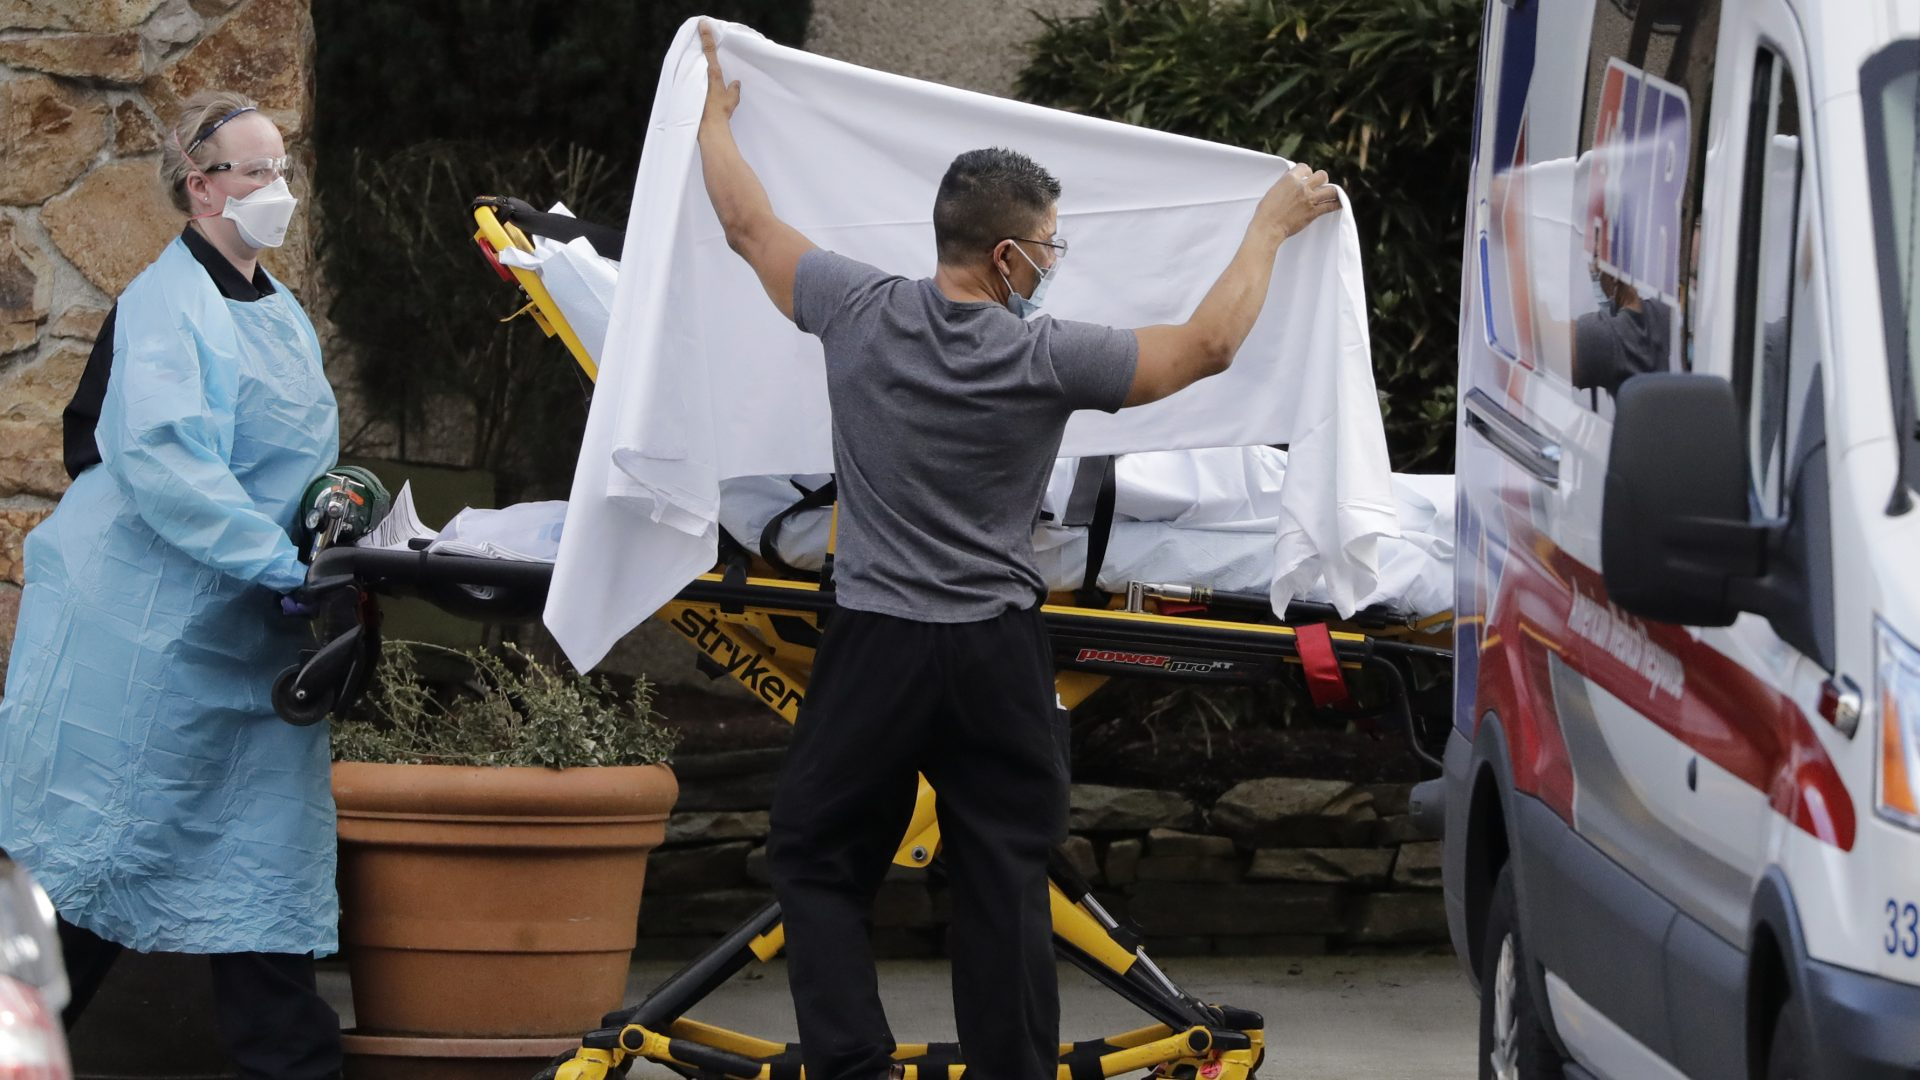 A staff member holds a sheet as a privacy screen as a person on a stretcher is taken to an ambulance from Life Care, a nursing facility where dozens of people are being tested for the COVID-19 virus in Kirkland, Wash., northeast of Seattle.